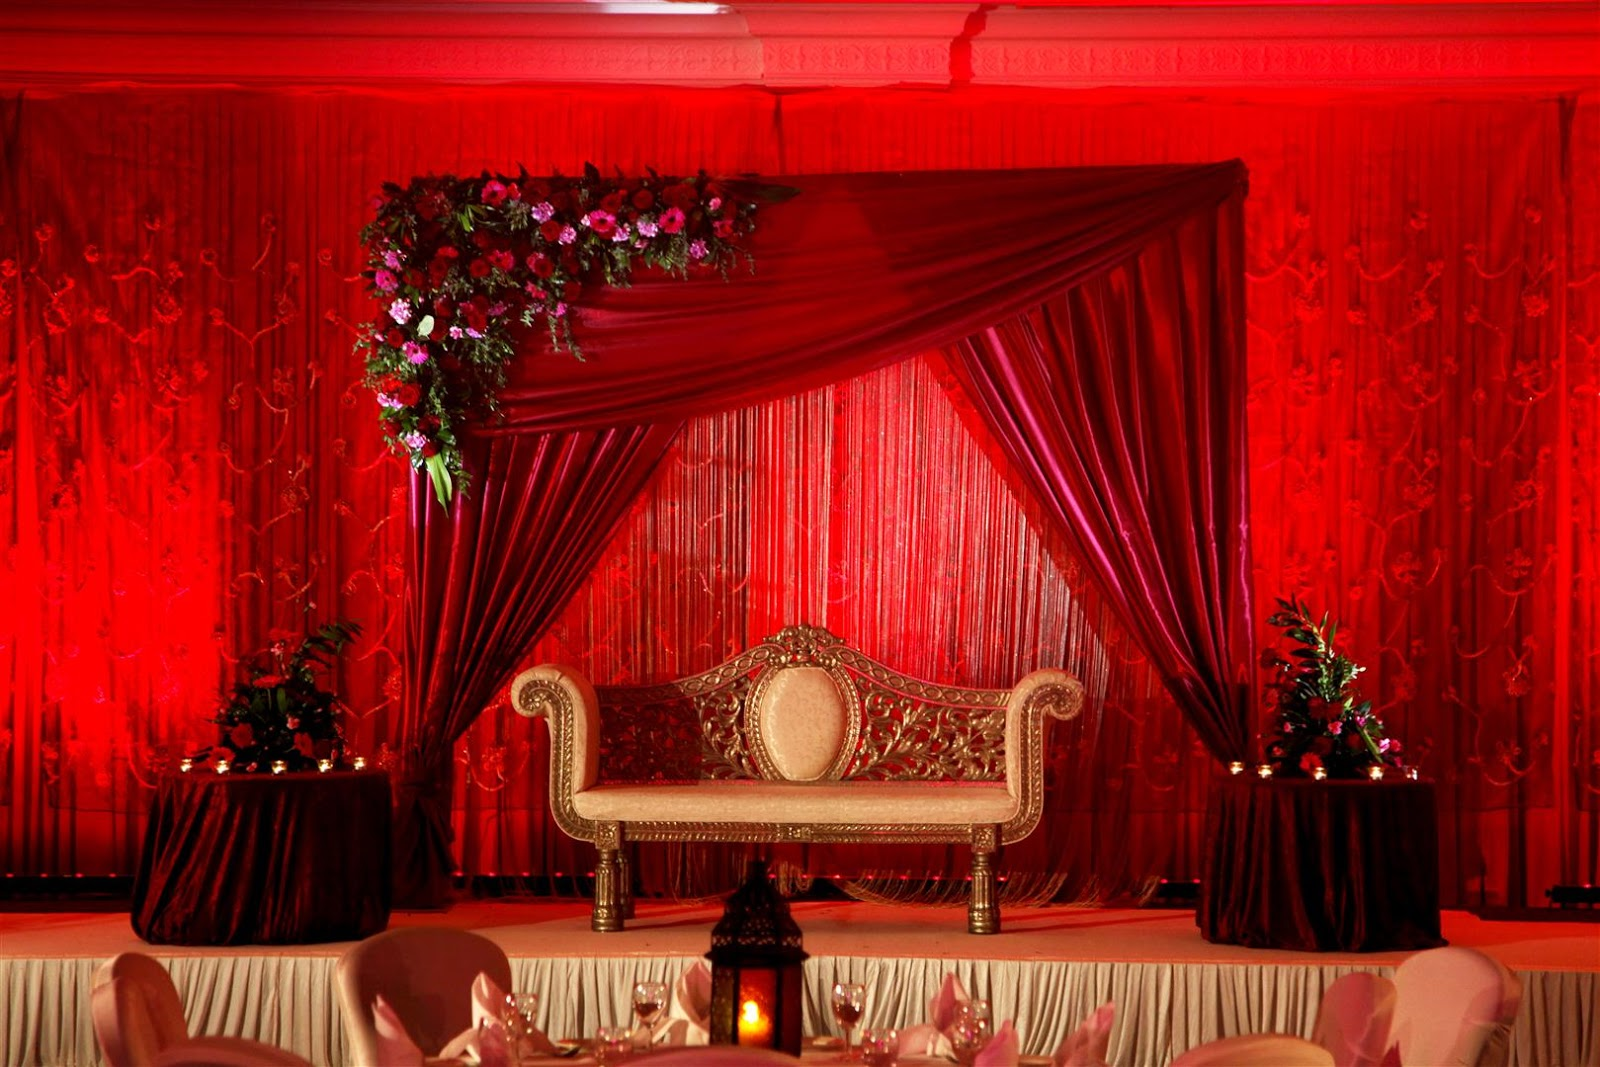 maz's blog: our favourite asian wedding decorations in coventry